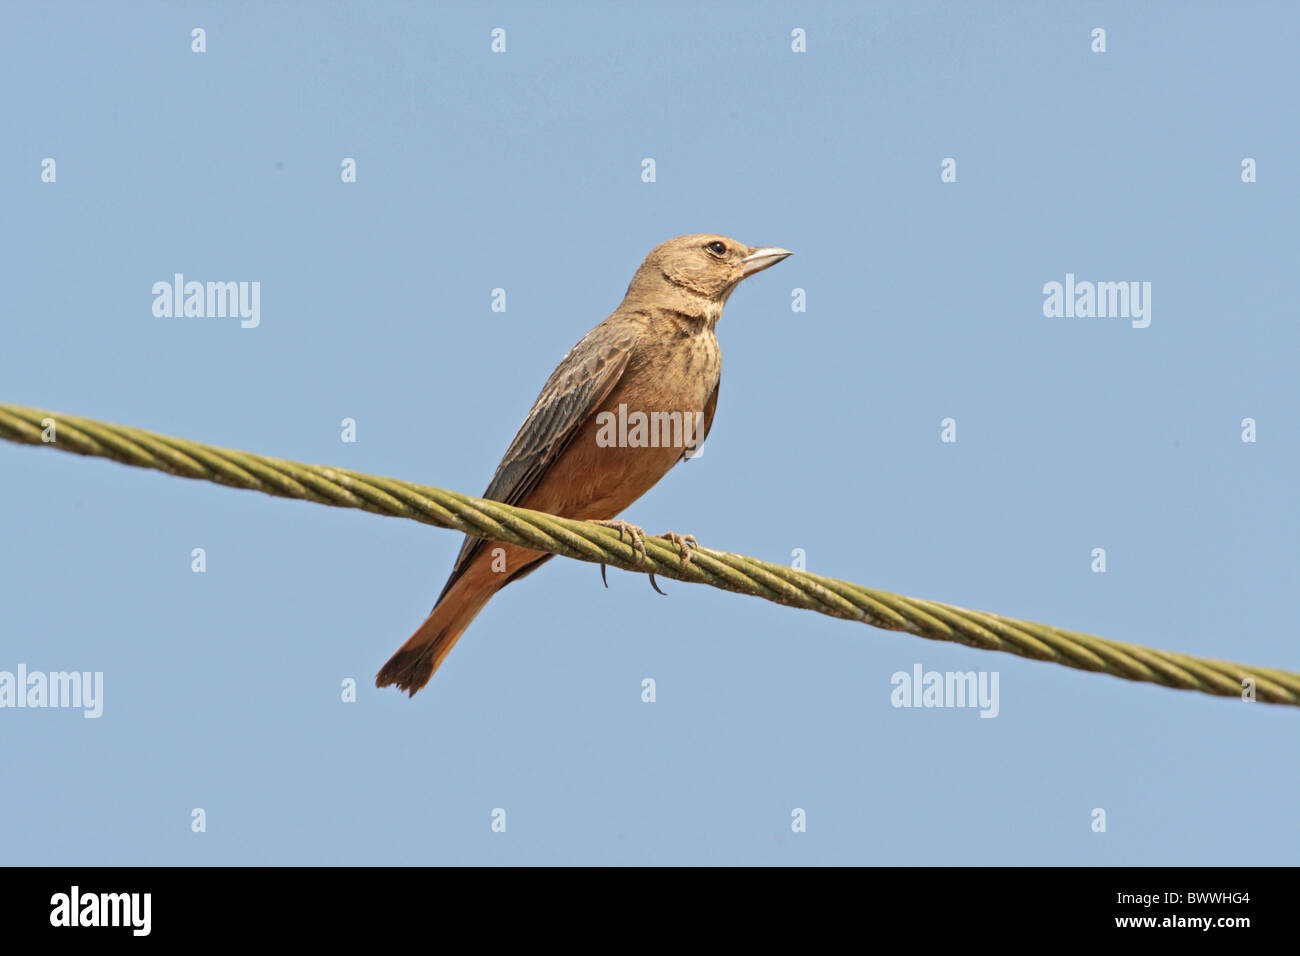 Rufous-tailed Lark (Ammomanes phoenicurus) adult, perched on wire, Chorao Island, Goa, India, november - Stock Image